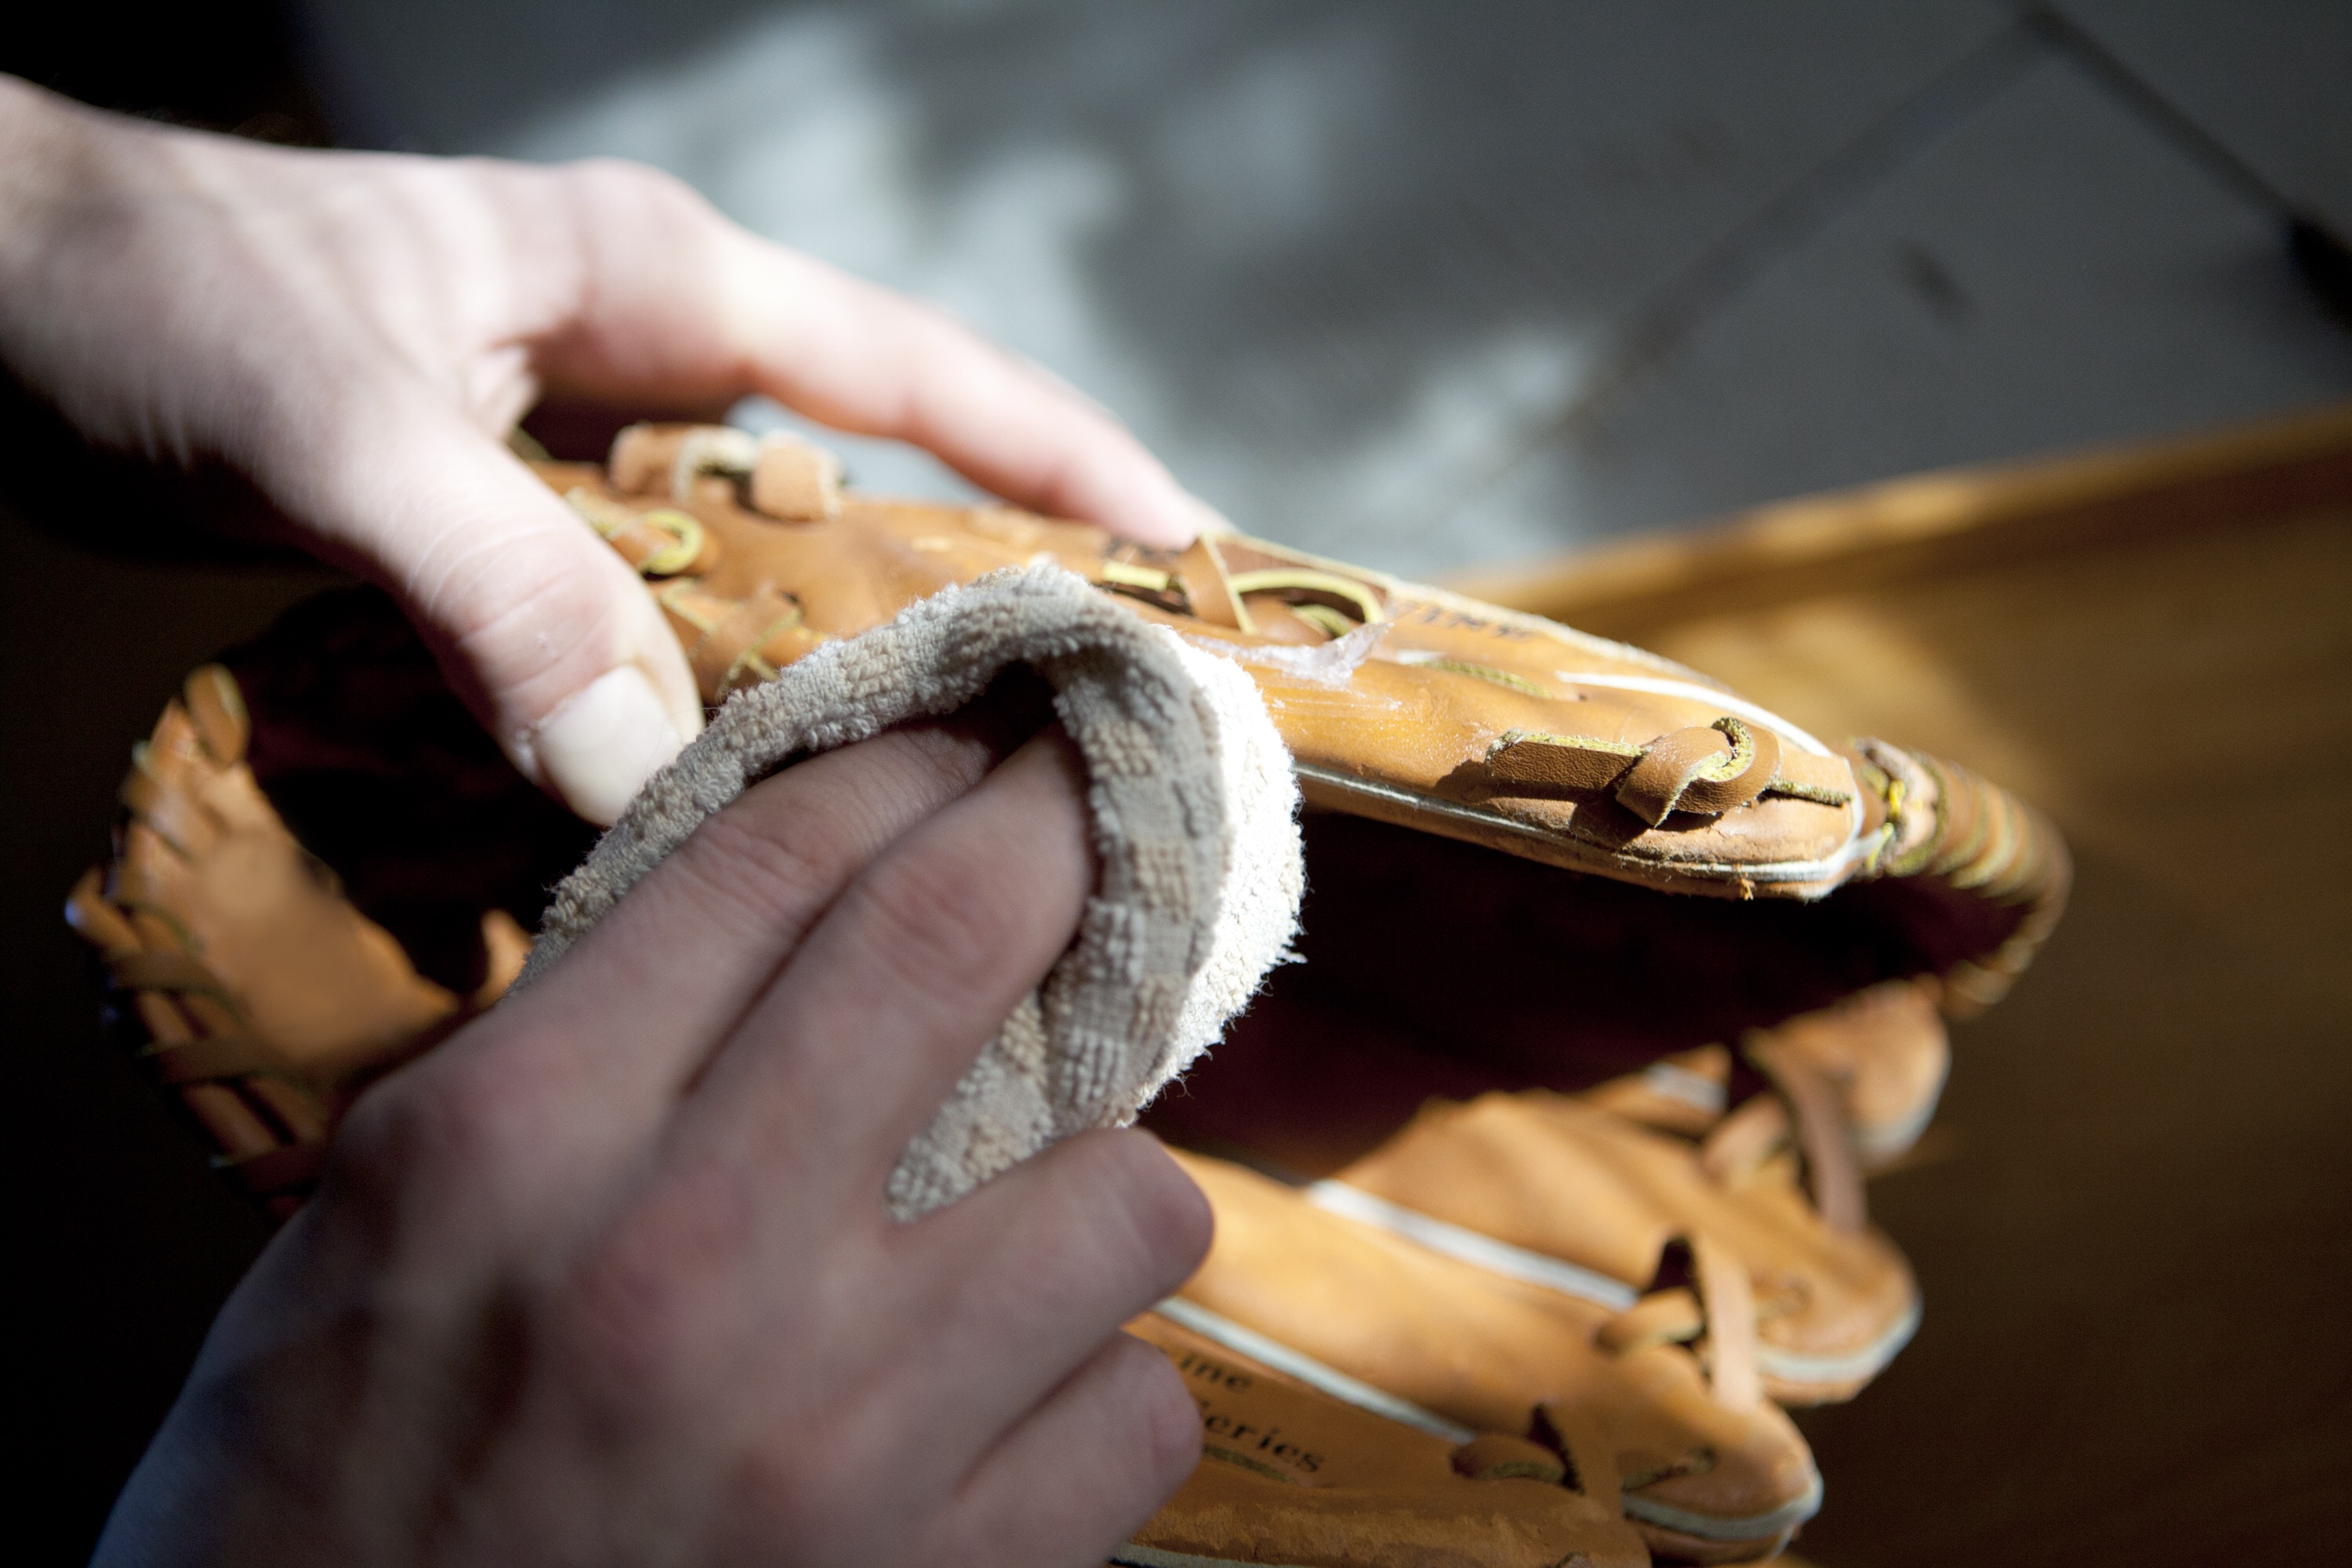 www.jnyintheclassroom.org - OILING STEPS FOR A NEW BASEBALL GLOVE 2